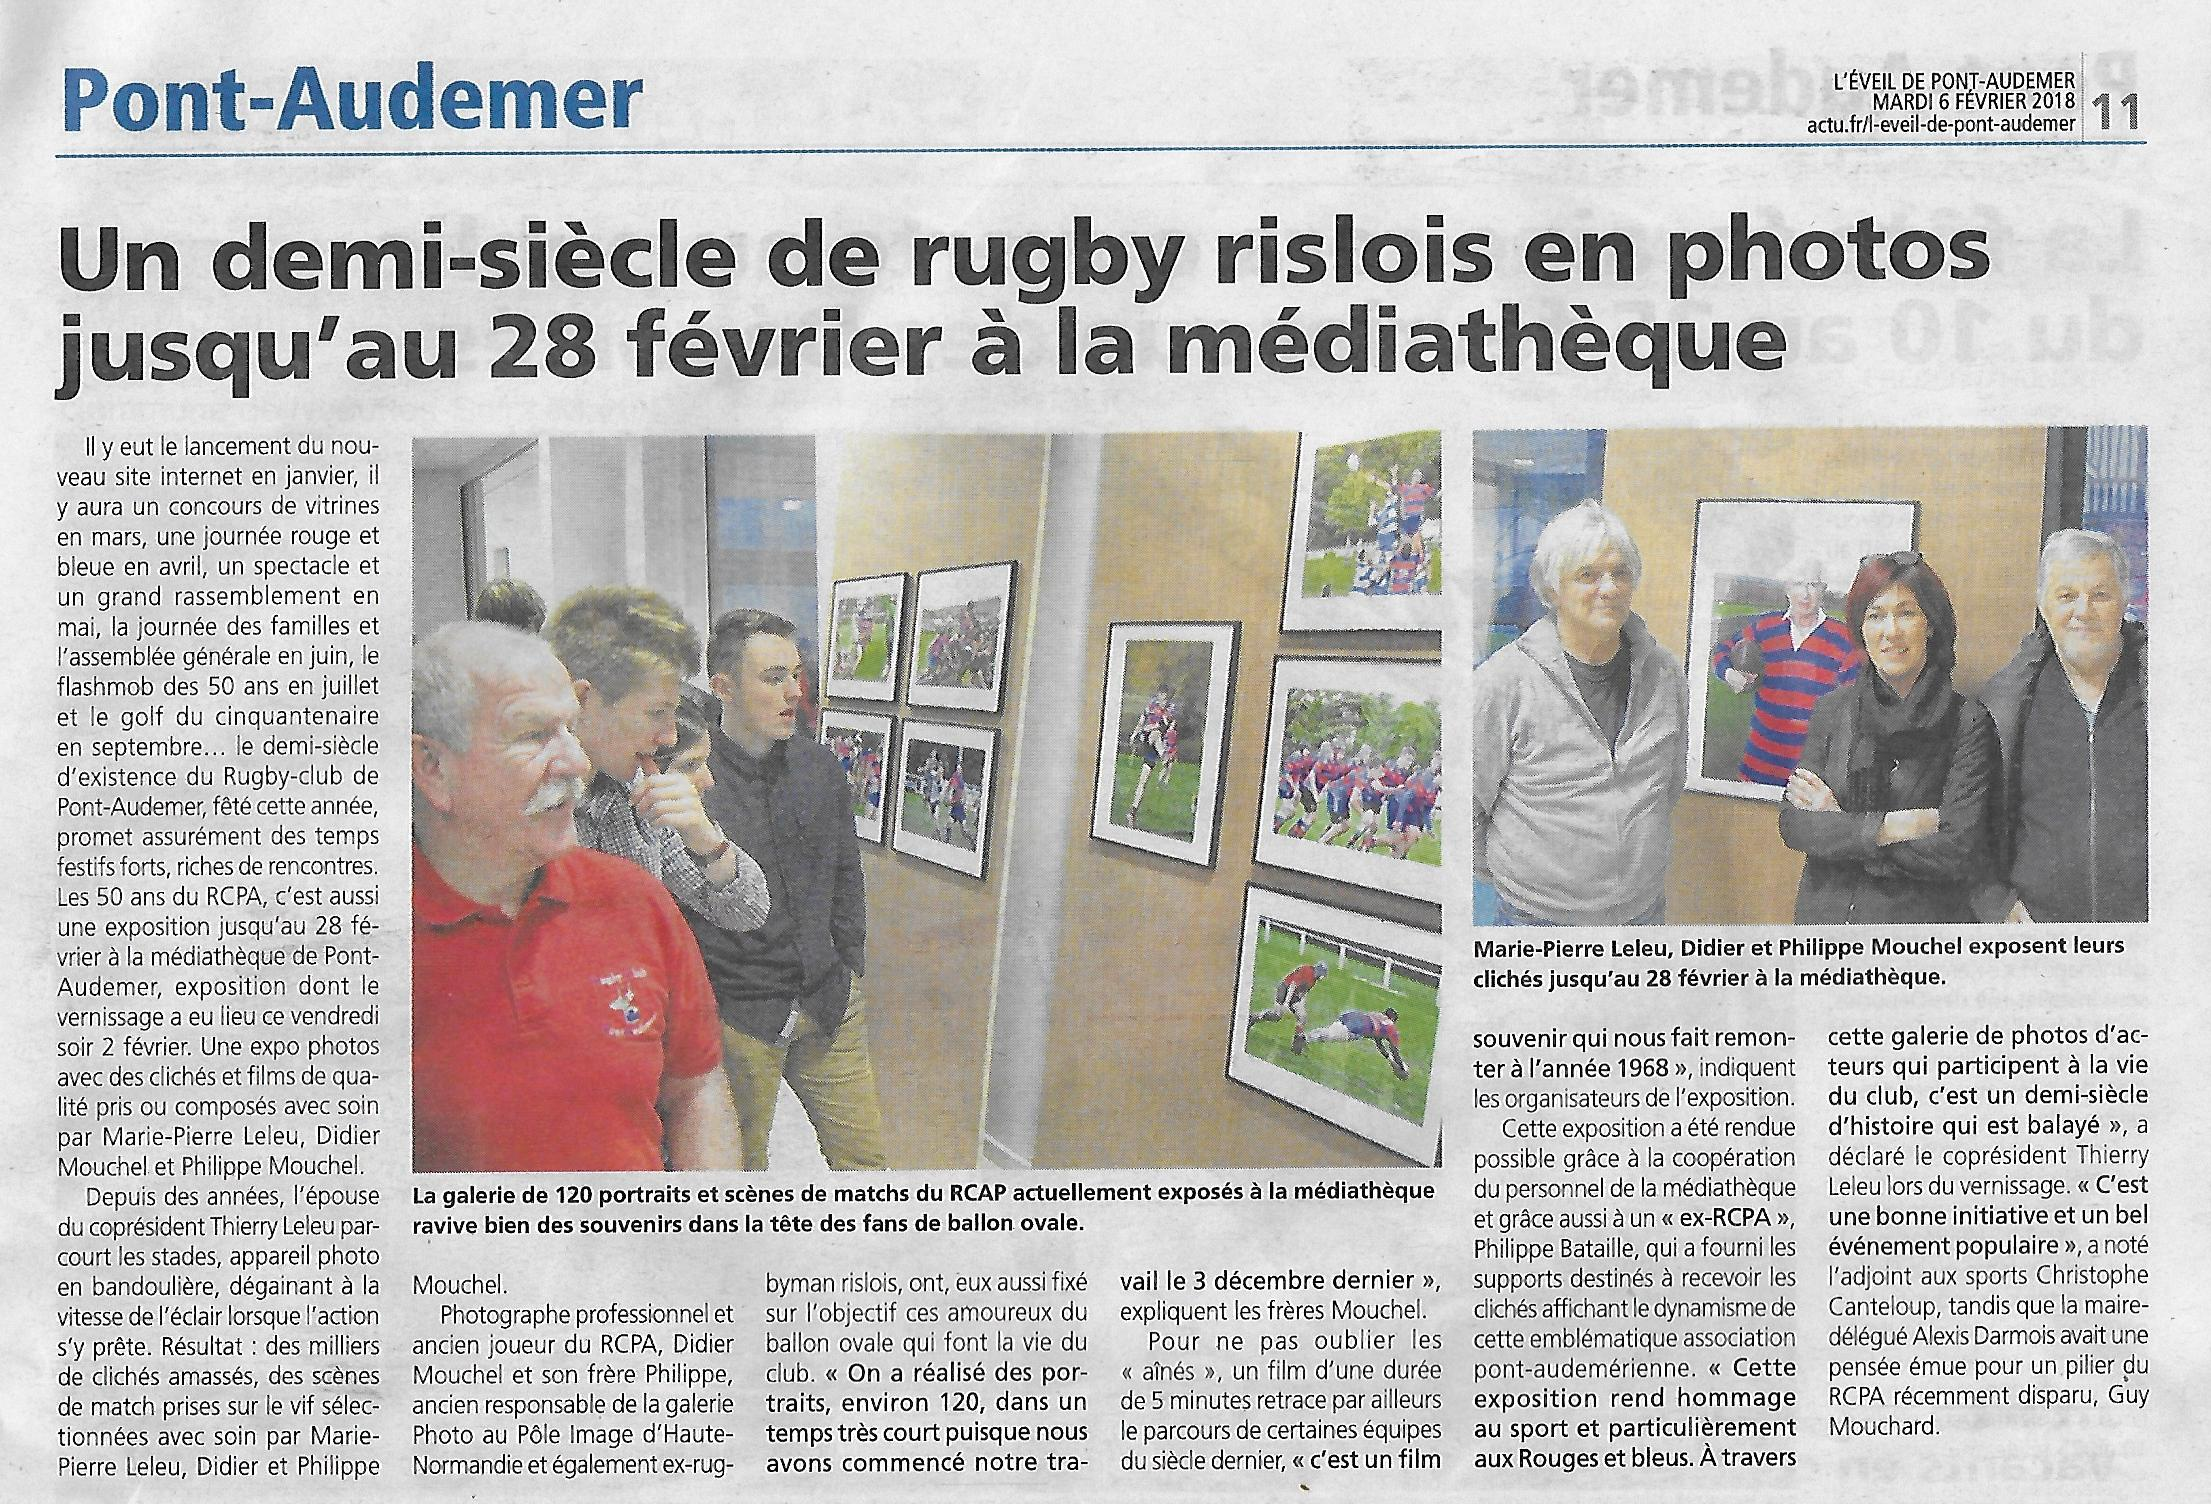 Rcpa Rugby Club Pont Audemer 50 Ans De Passions Ovale